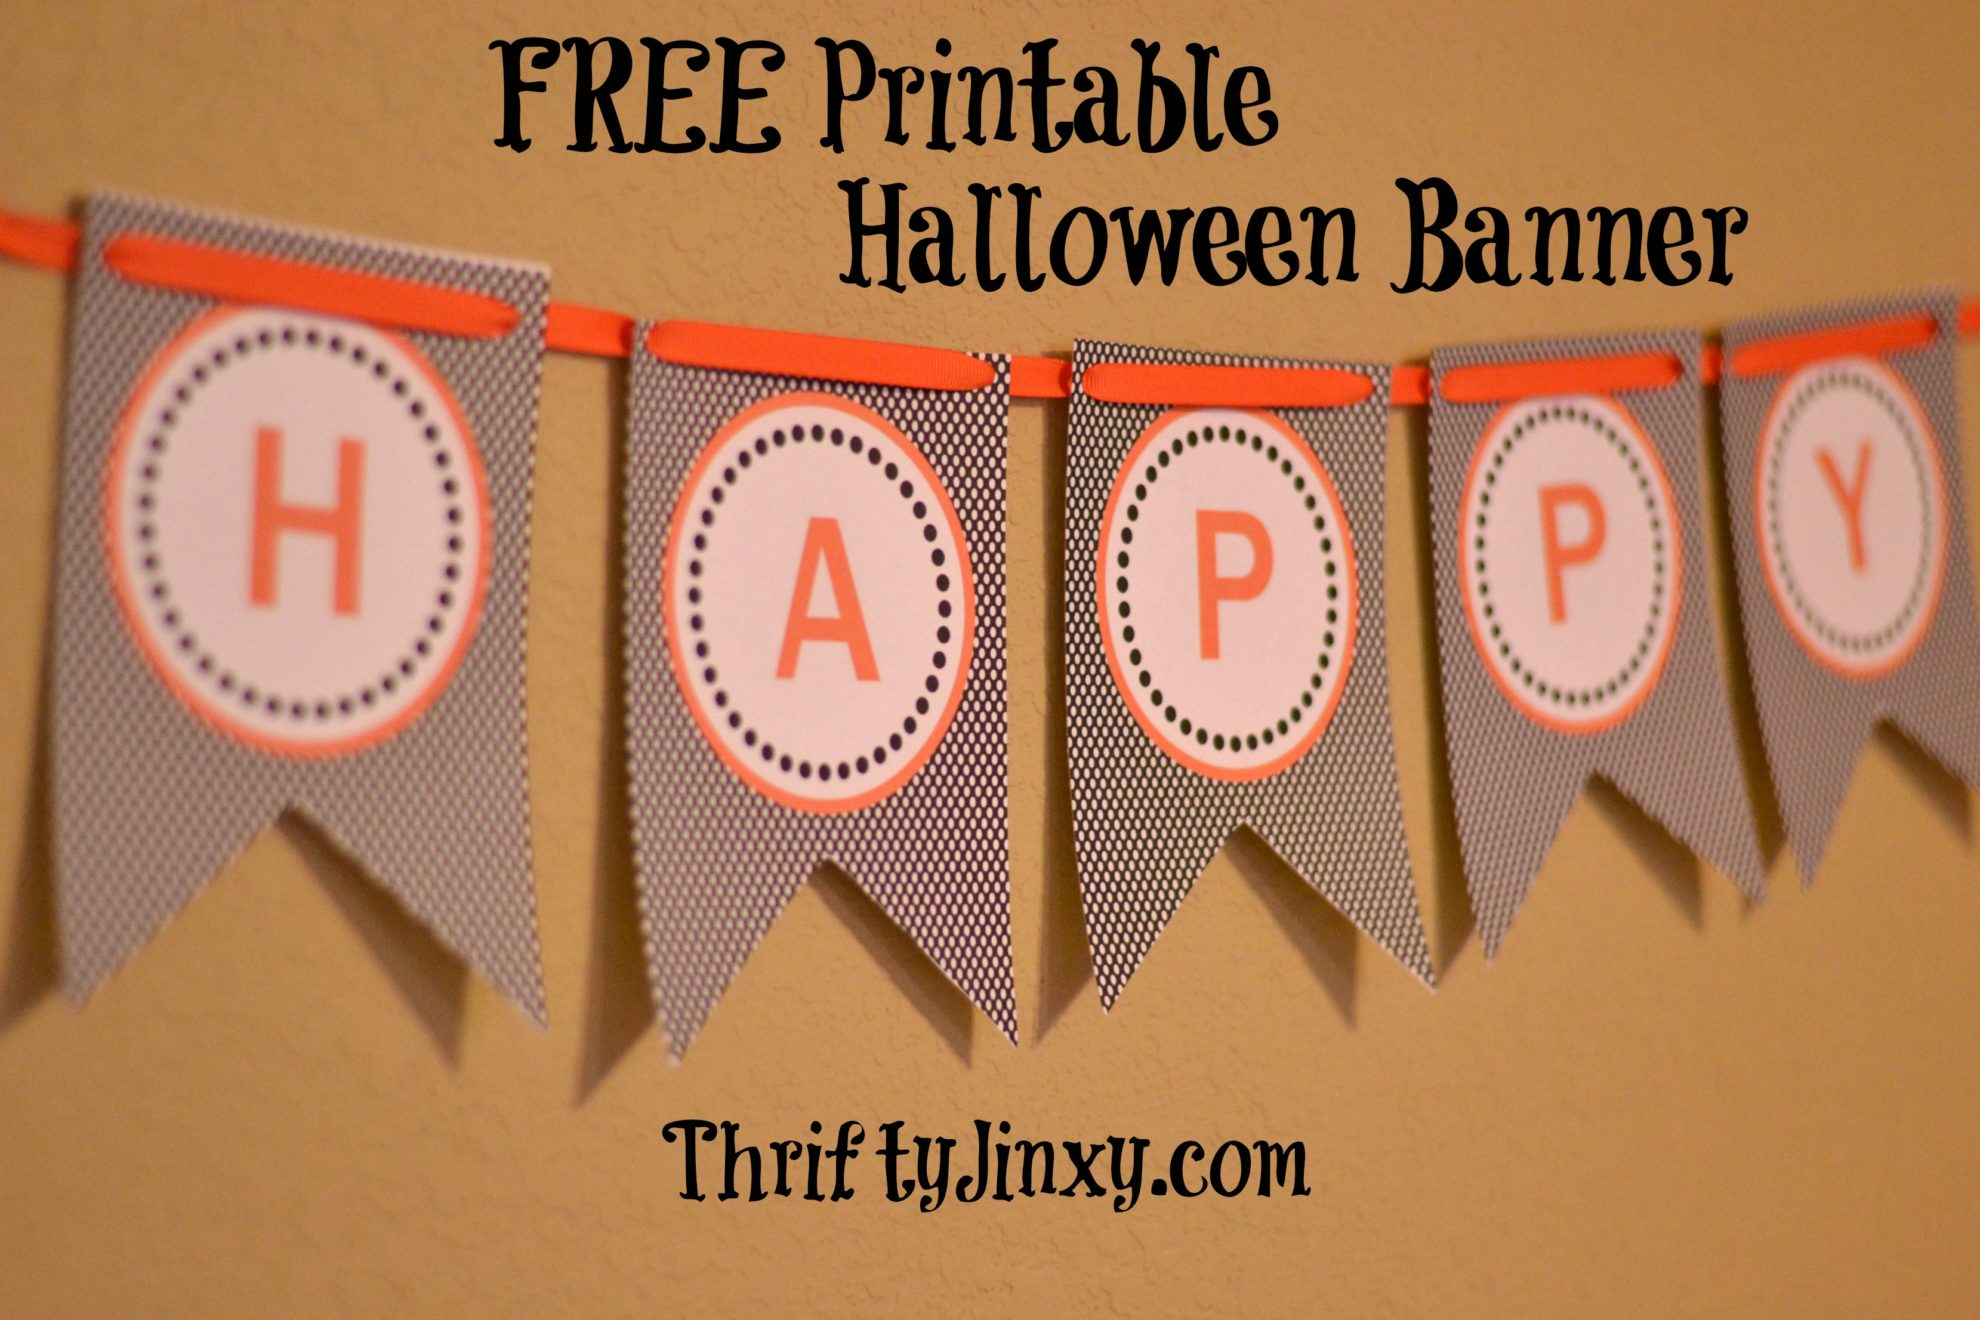 photograph relating to Printable Halloween Banners called No cost Printable Halloween Banner - Thrifty Jinxy